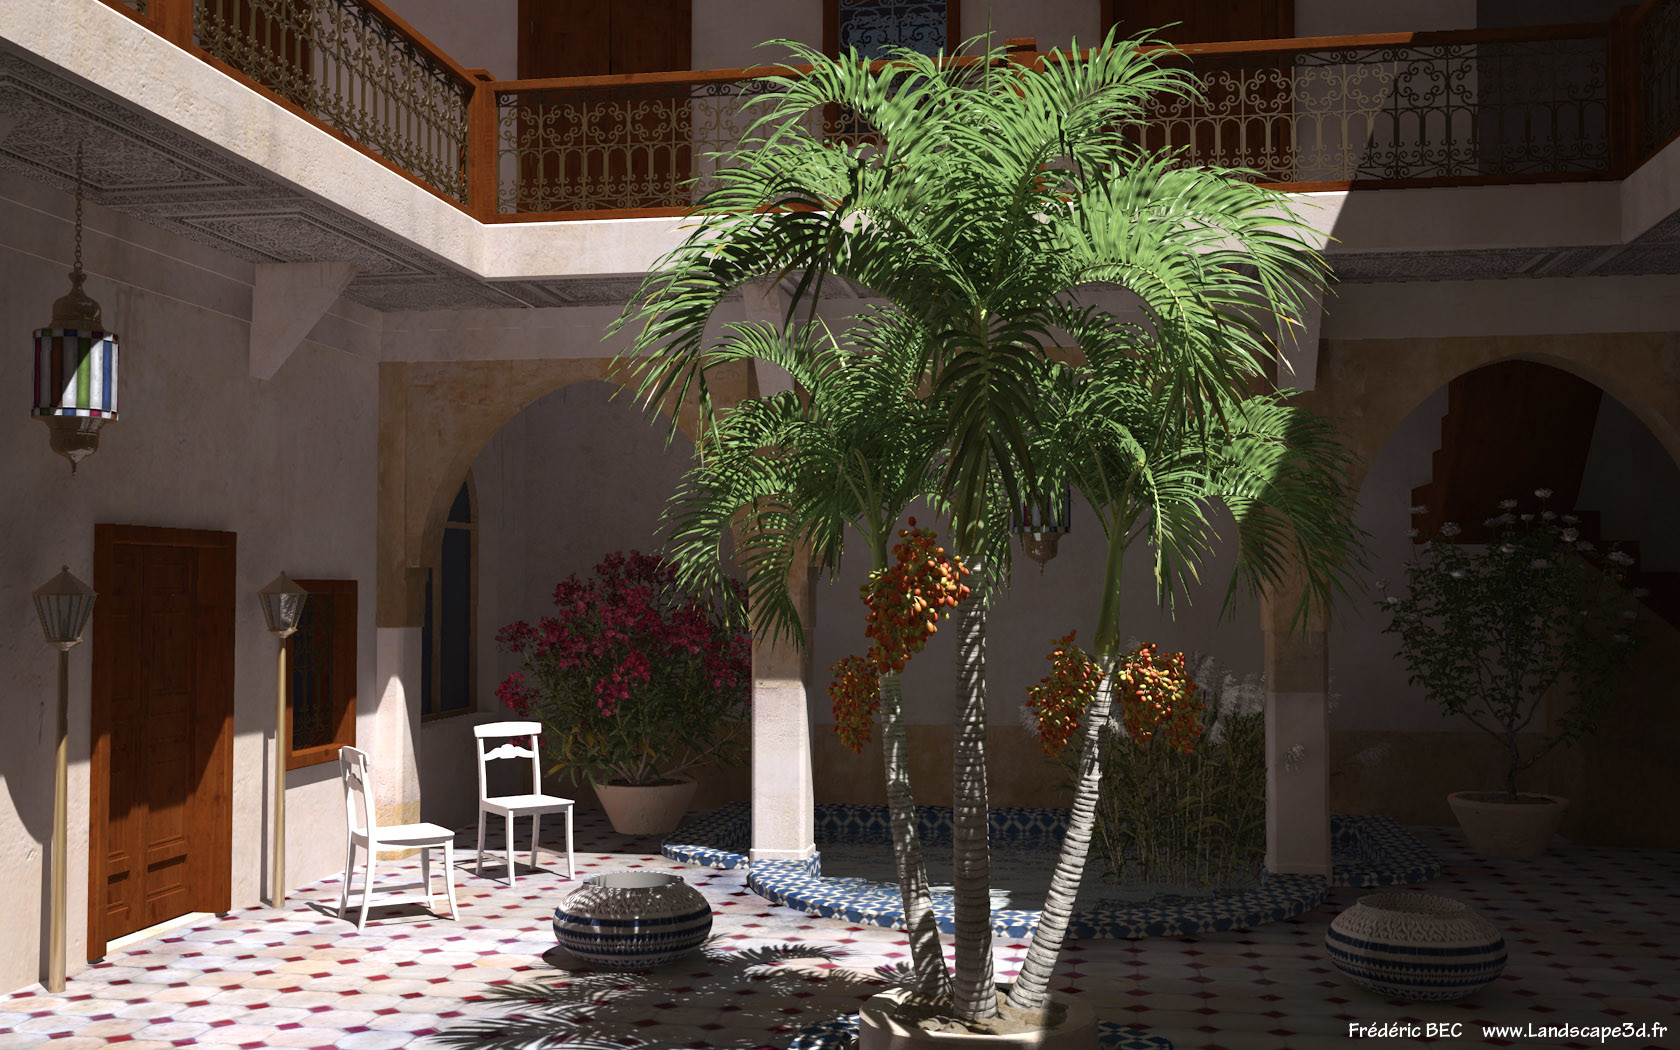 Frederic Bec Adonidia Merrillii Veitchia Christmas Palm Plant Tree 3d Model  Tpf The Factory 3ds Cad